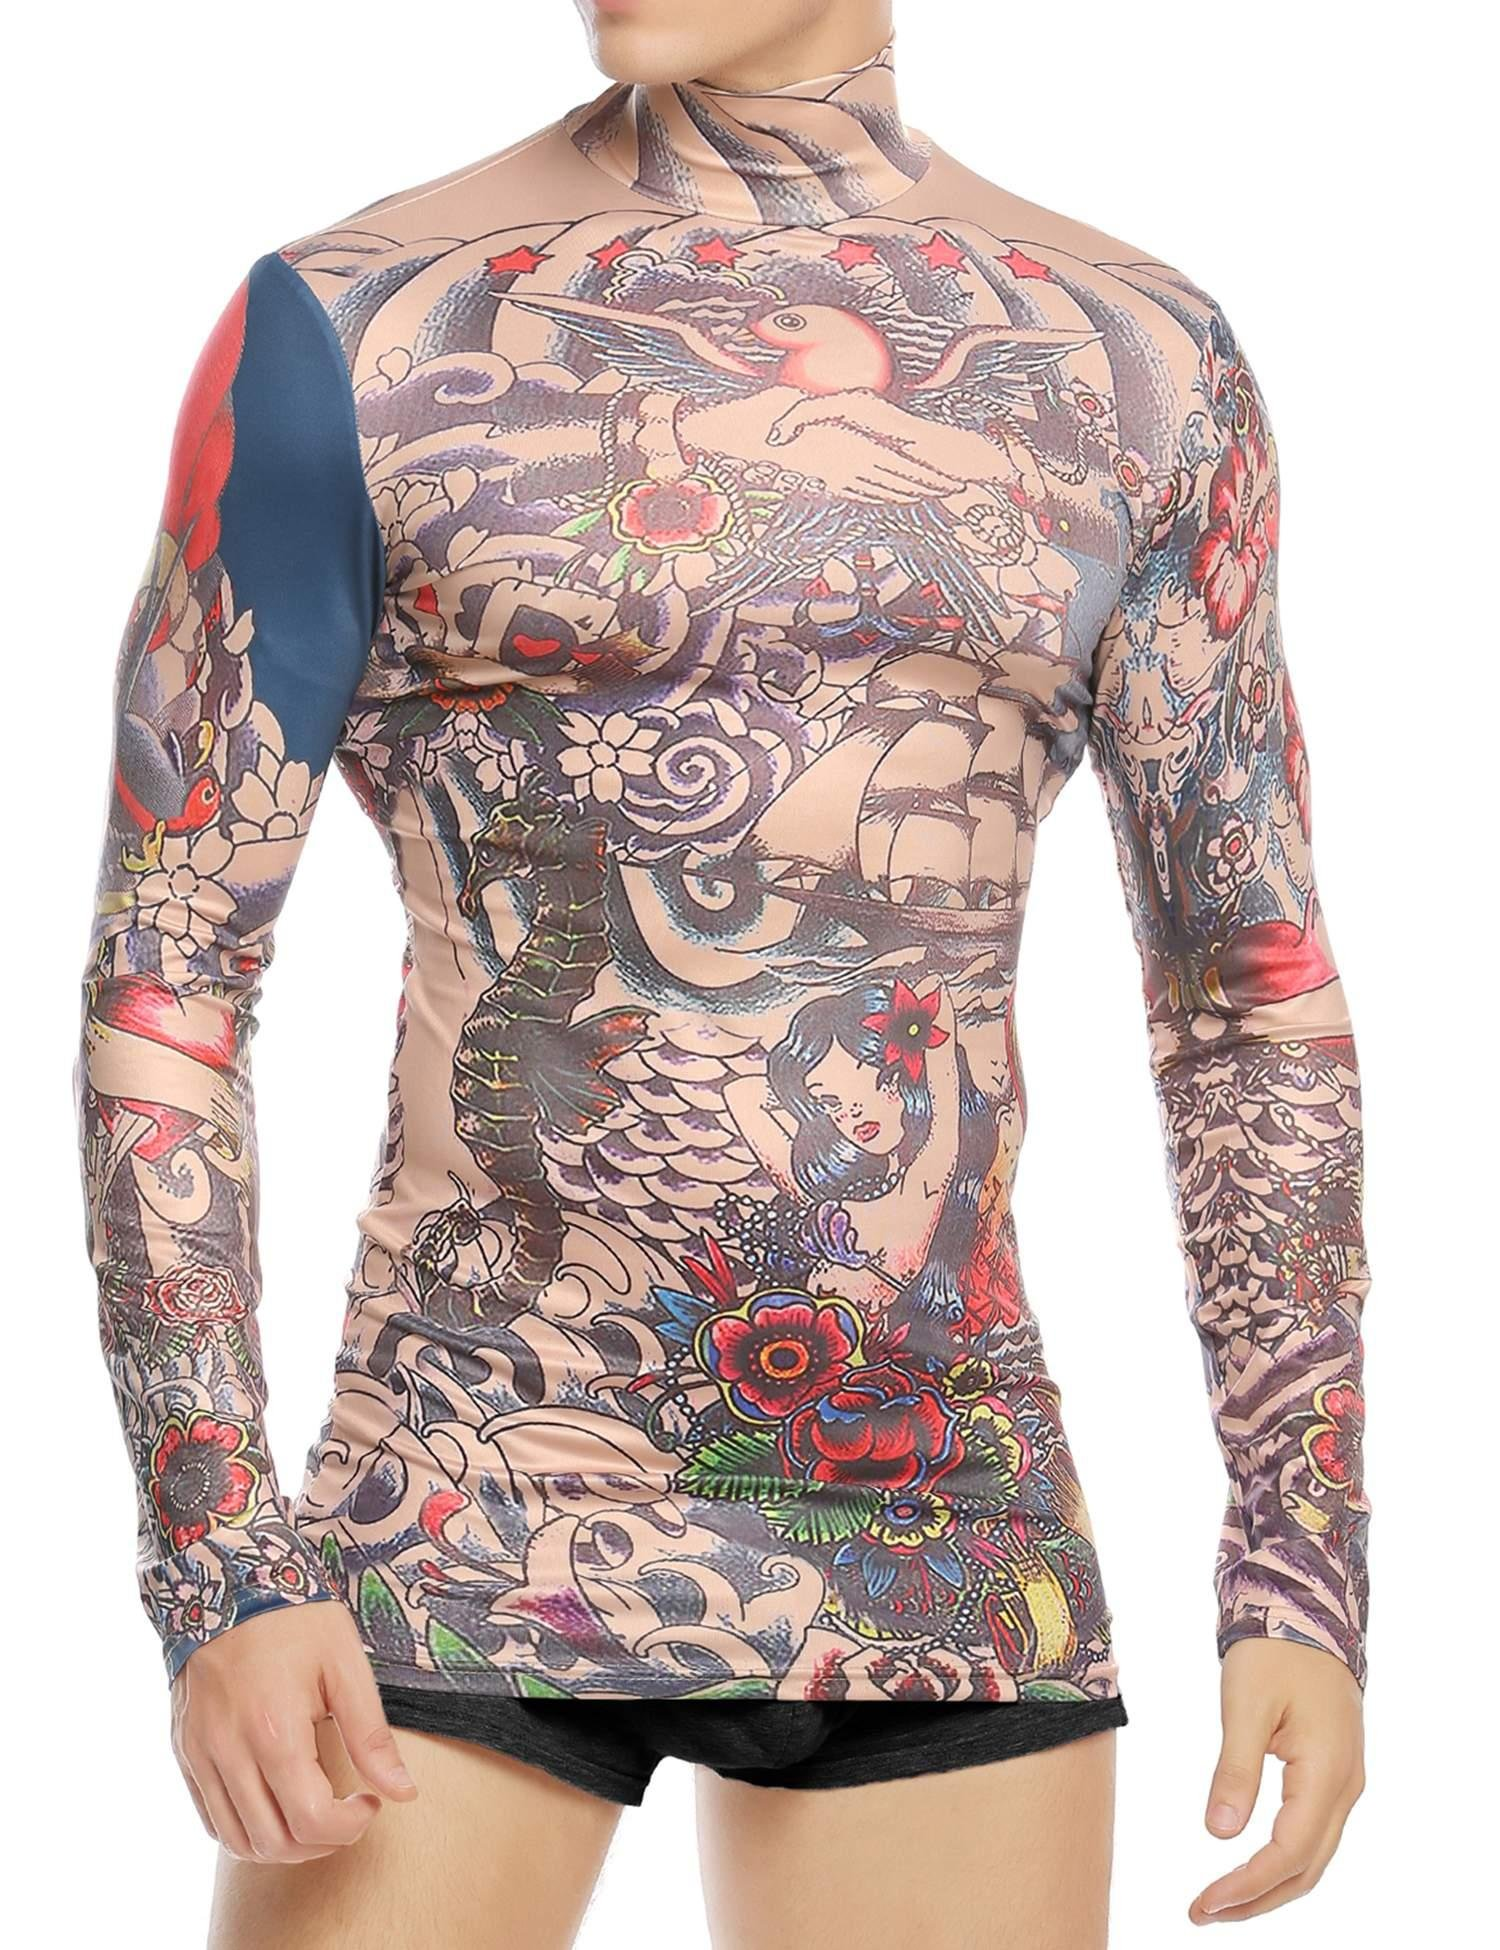 Coofandy Men's Tattoo Multi-coloured Tribal Inspired Print Long Sleeve Halloween Wearing Shirt Red XX-Large